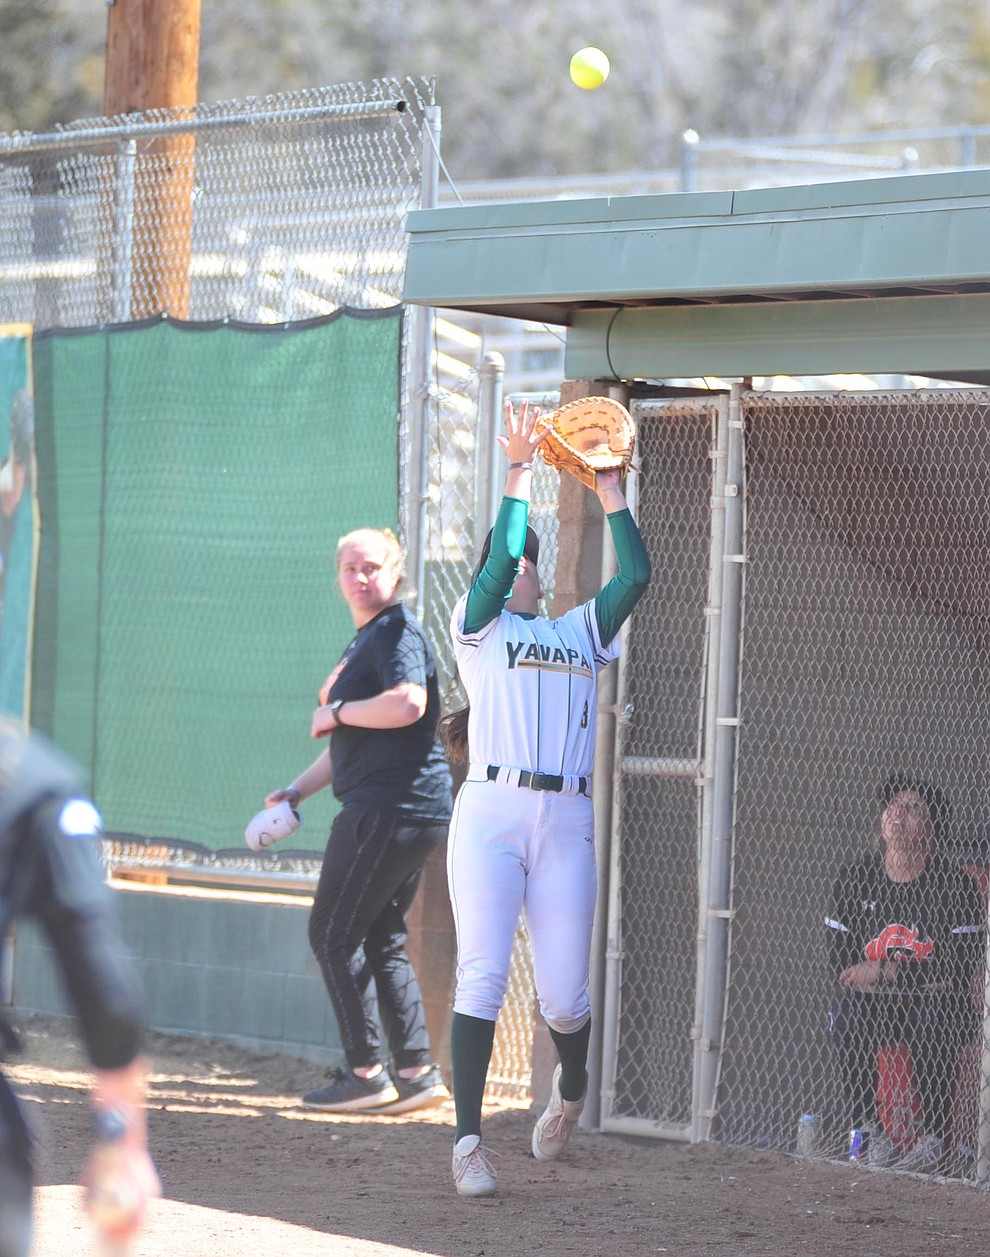 Yavapai's Jessica Giacoma makes the catch at the dugout fence as the Roughriders take on the Chandler Gilbert Coyotes Tuesday, March 19, 2018 in Prescott.